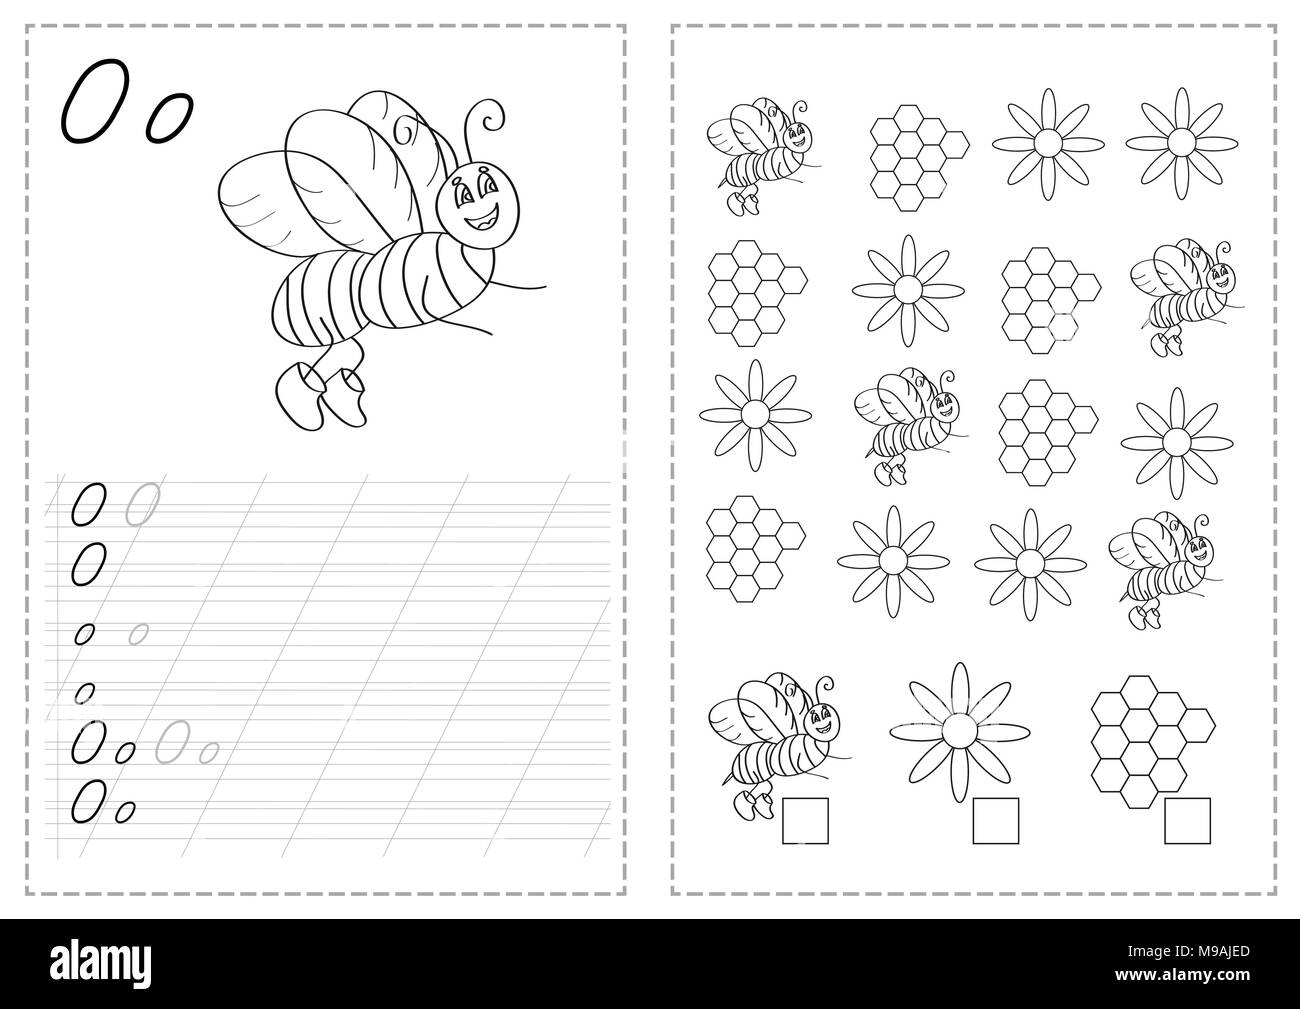 Russian Alphabet Stockfotos & Russian Alphabet Bilder - Alamy